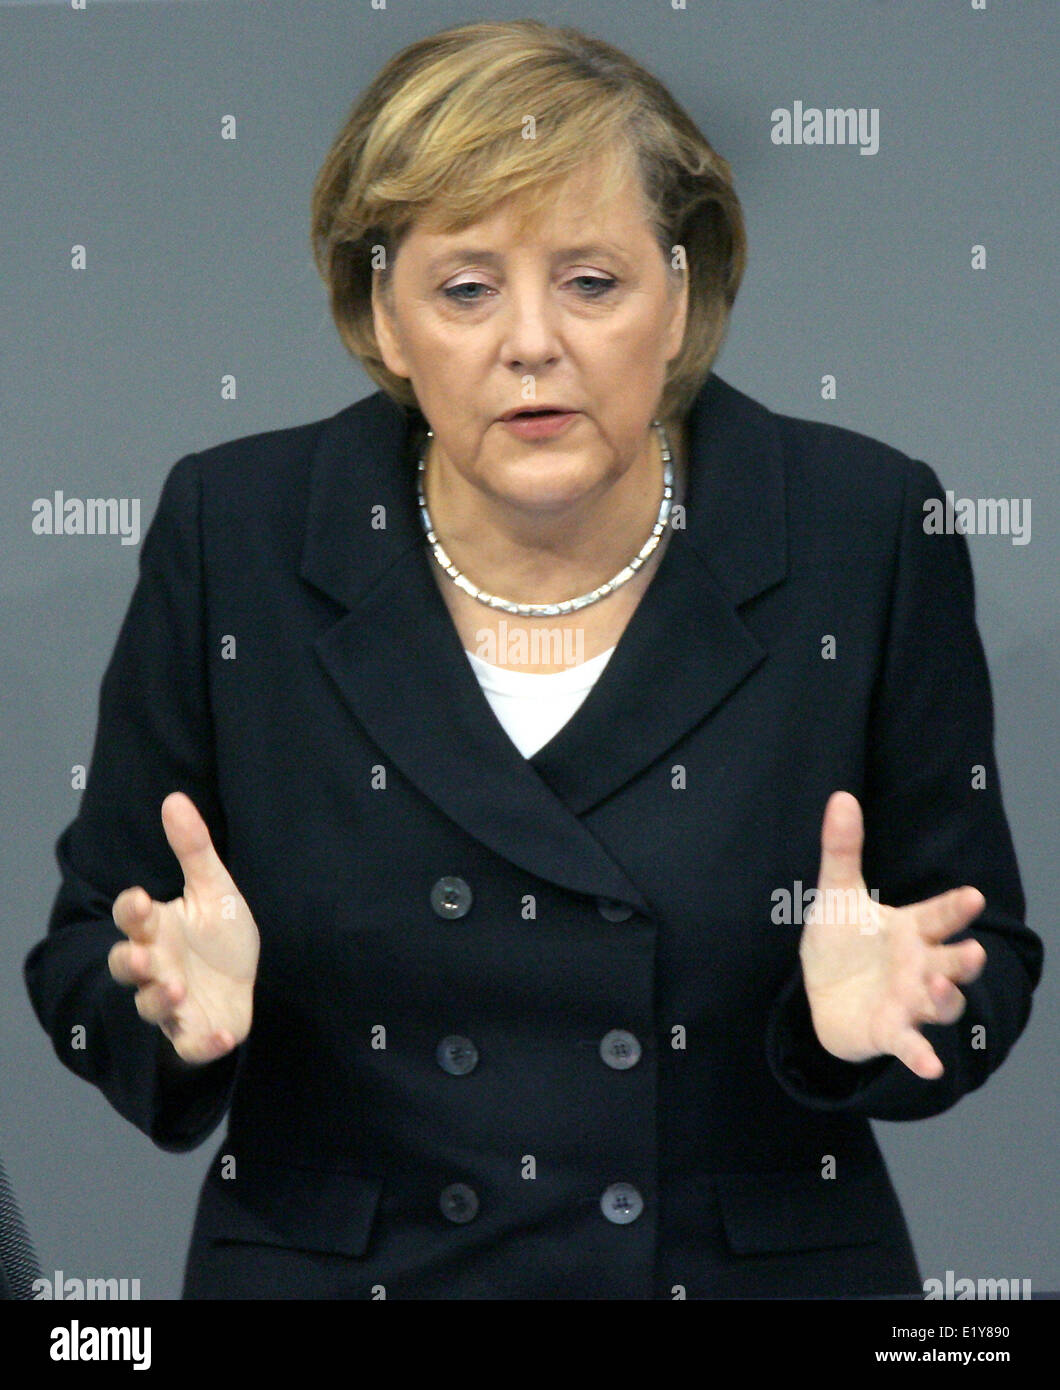 Chancellor Angela Merkel (CDU) gives a speech in the Bundestag during the budget debate (08.09.2006).  Foto: Tim - Stock Image